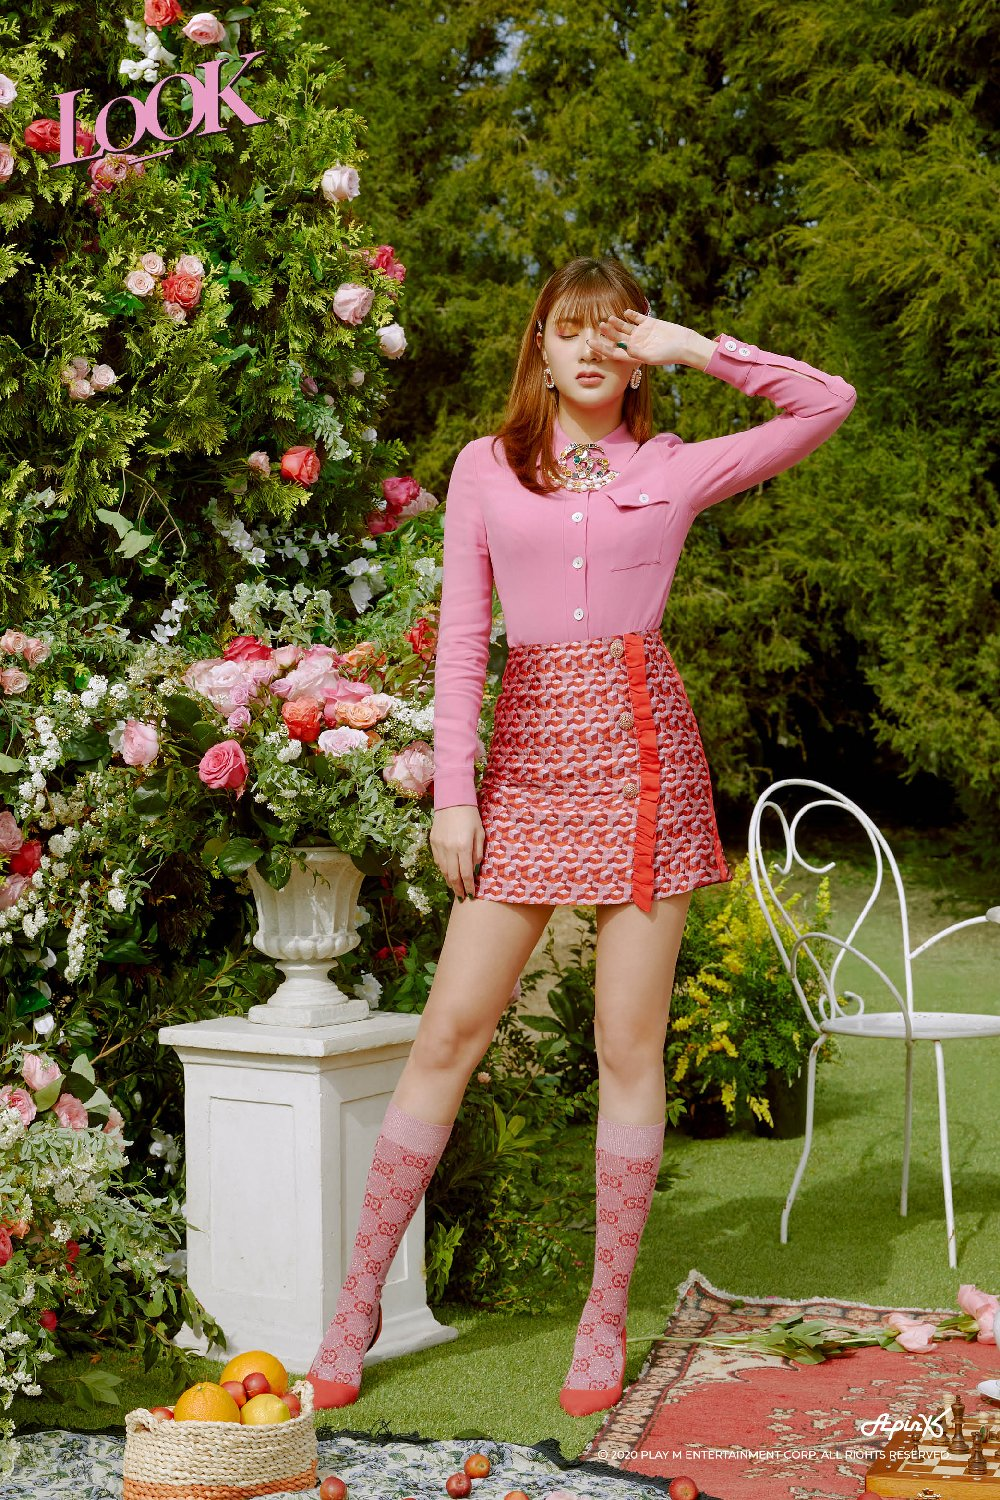 Oh Ha Young